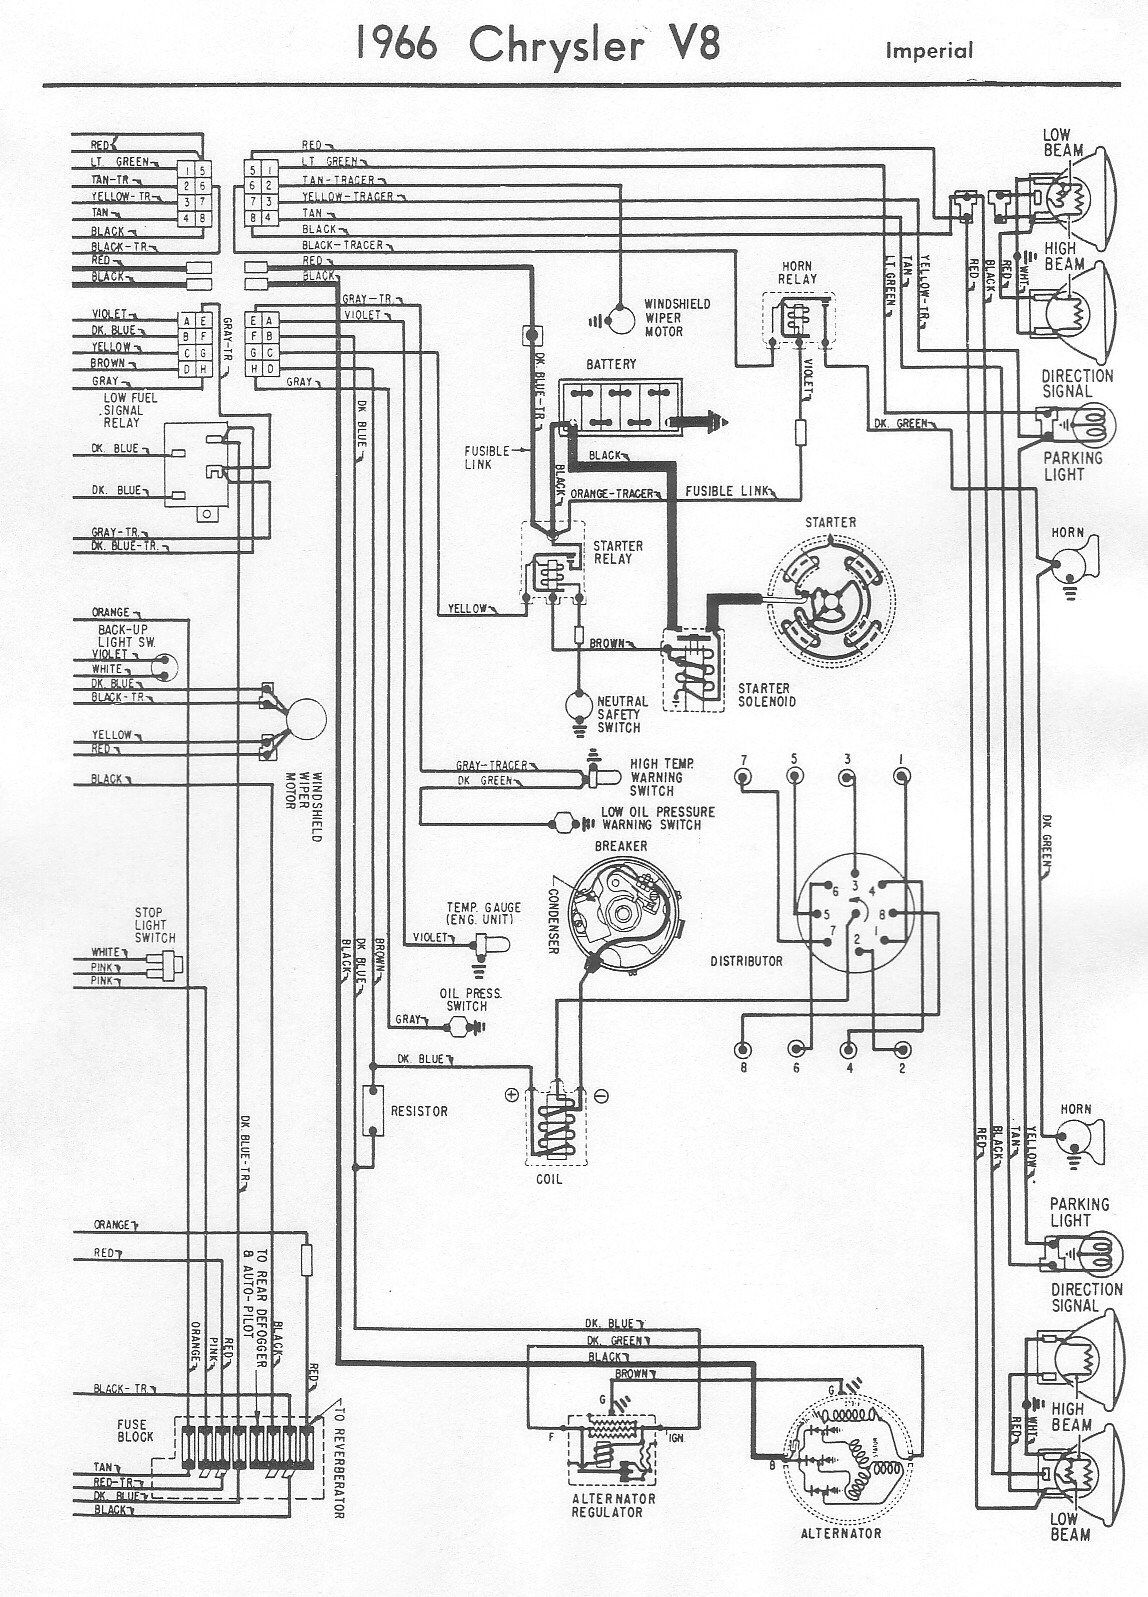 1970 Cj5 Dash Wiring Diagram Schematic Books Of Jeep 85 Camaro Auto Electrical Rh Semanticscholar Org Uk Edu Bitoku